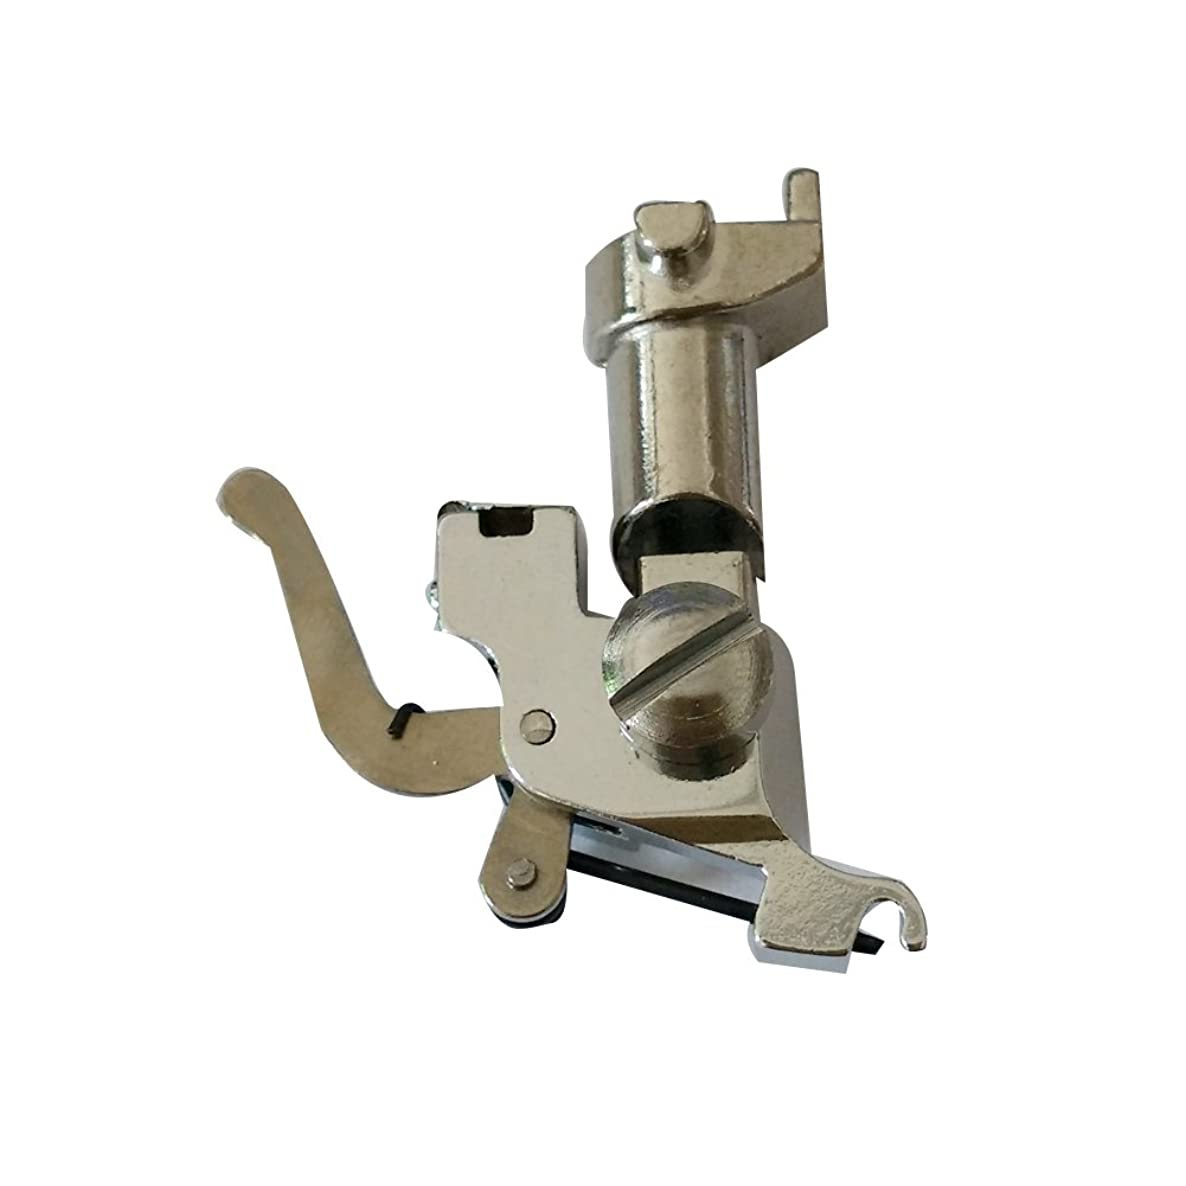 HONEYSEW Adapter Low Shank Snap On feet foot For Bernina Old Style 900,900E,910,910N,930,931